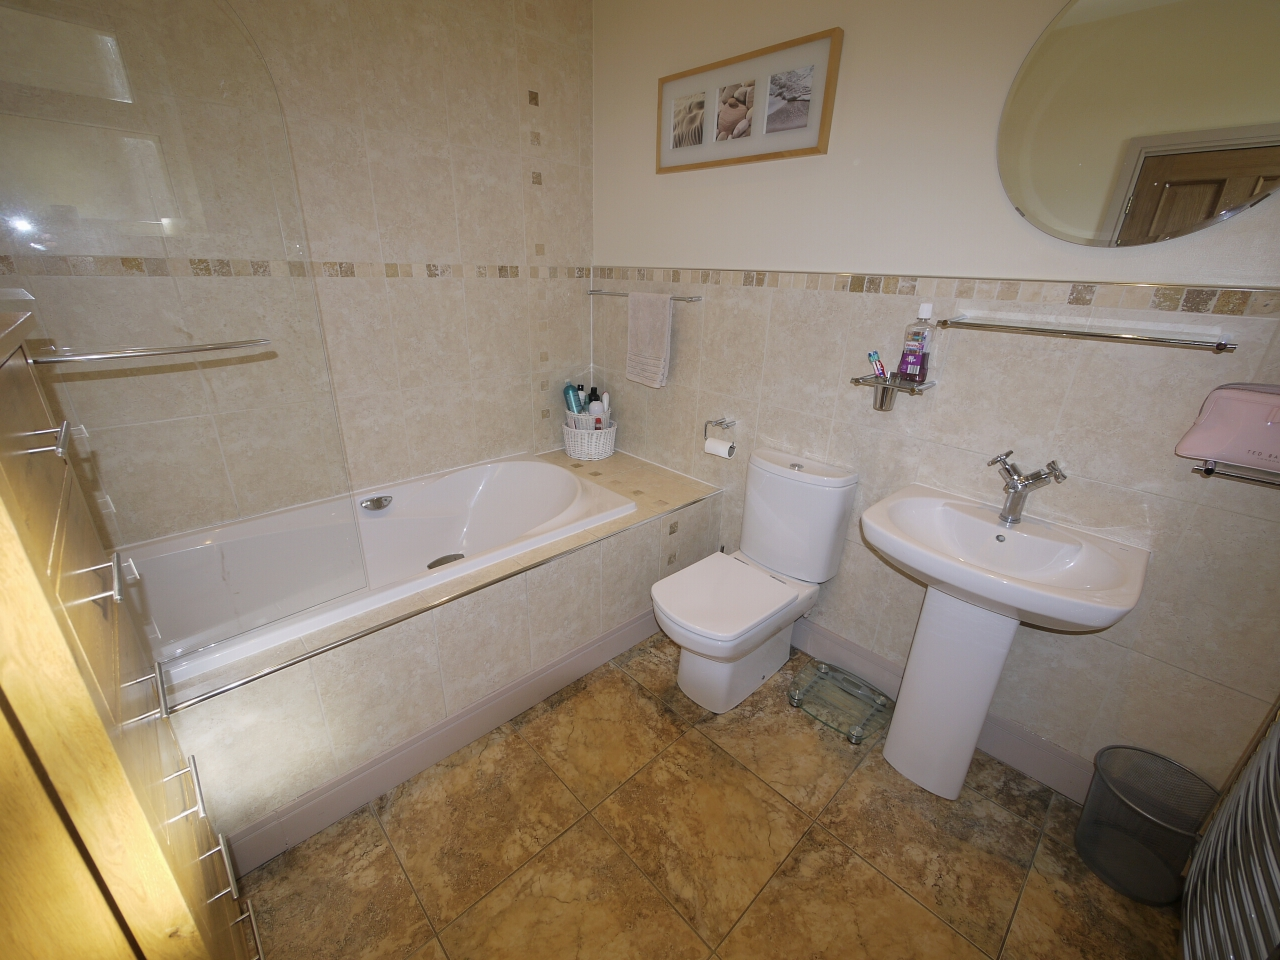 5 bedroom semi-detached house For Sale in Halilfax - Photograph 14.